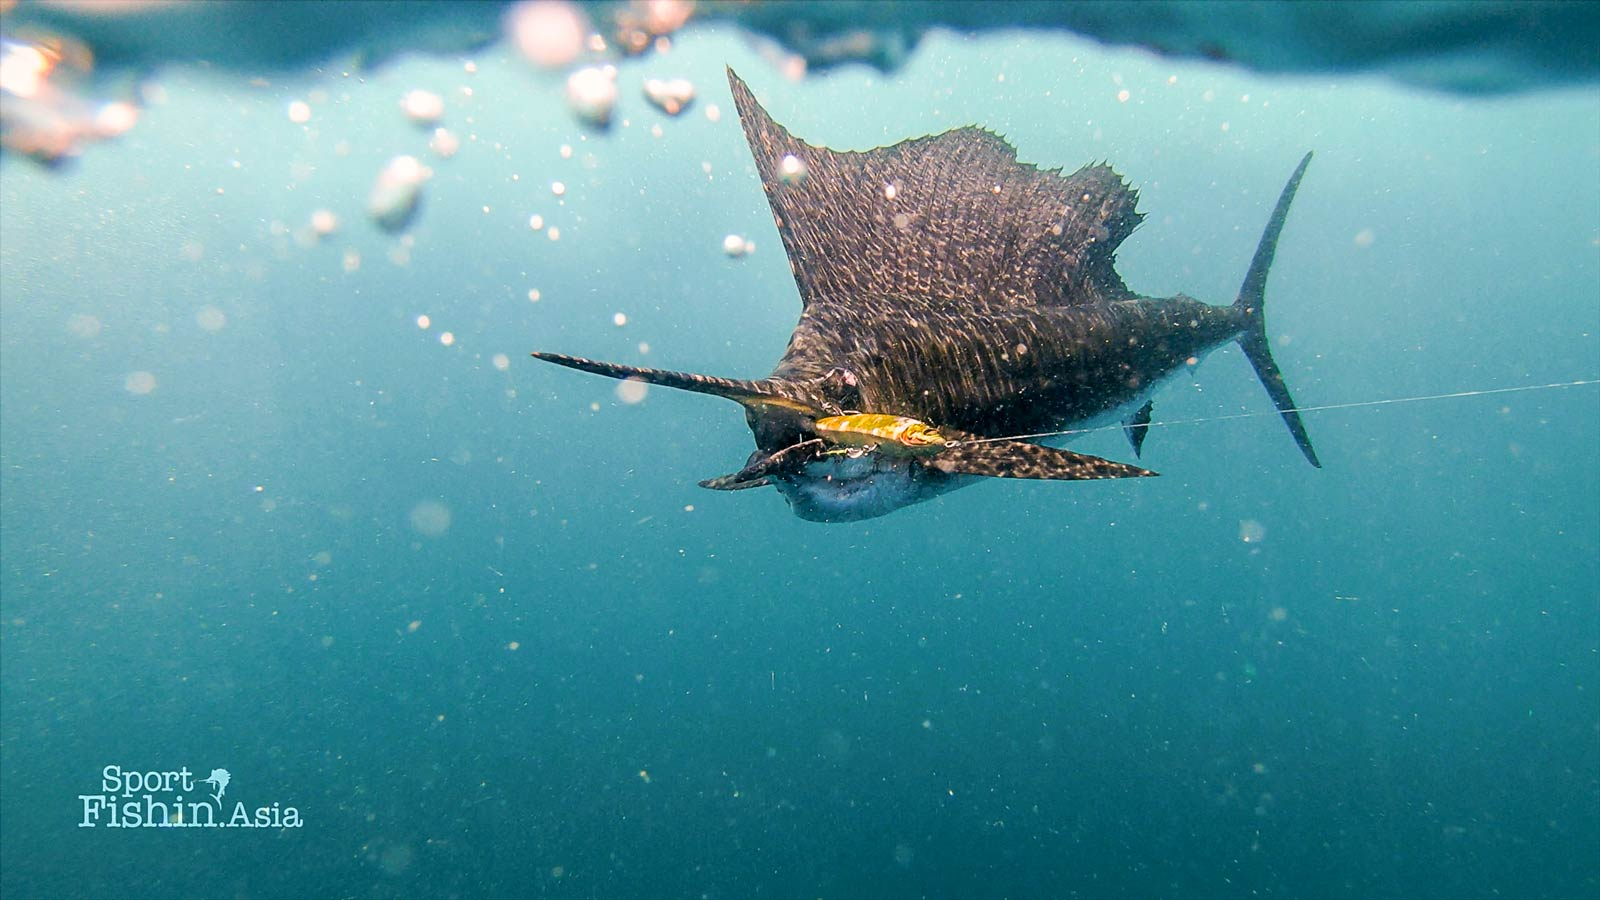 Ken's favourite shot! His Megabass swimsuit lure in the mouth of a Rompin sailfish.